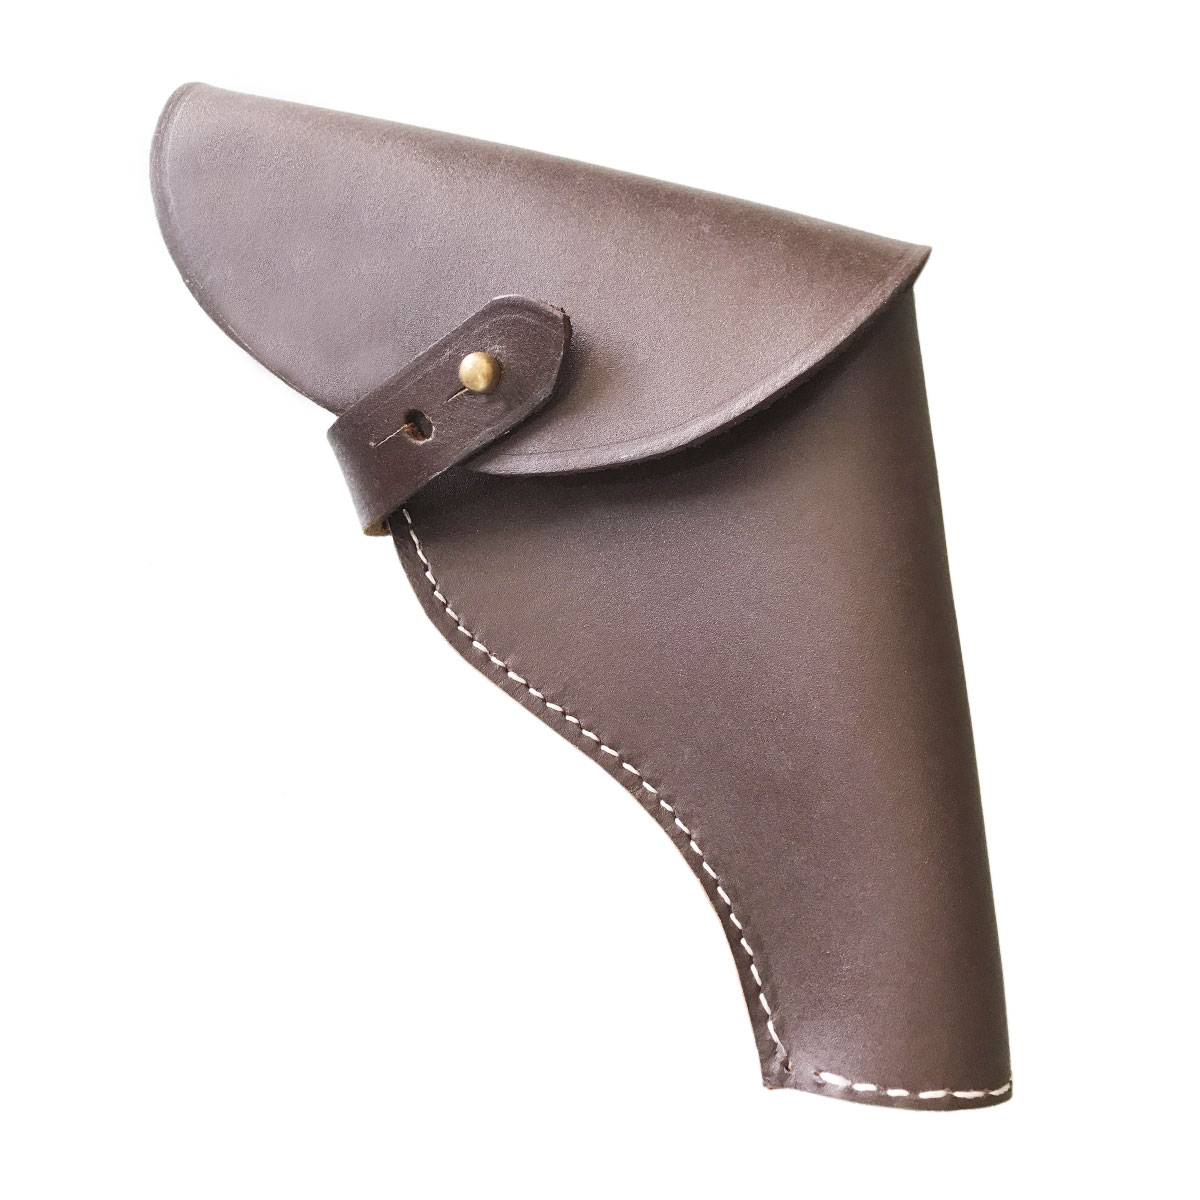 DARK BROWN COWBOY HOLSTER FOR SHORT GUN